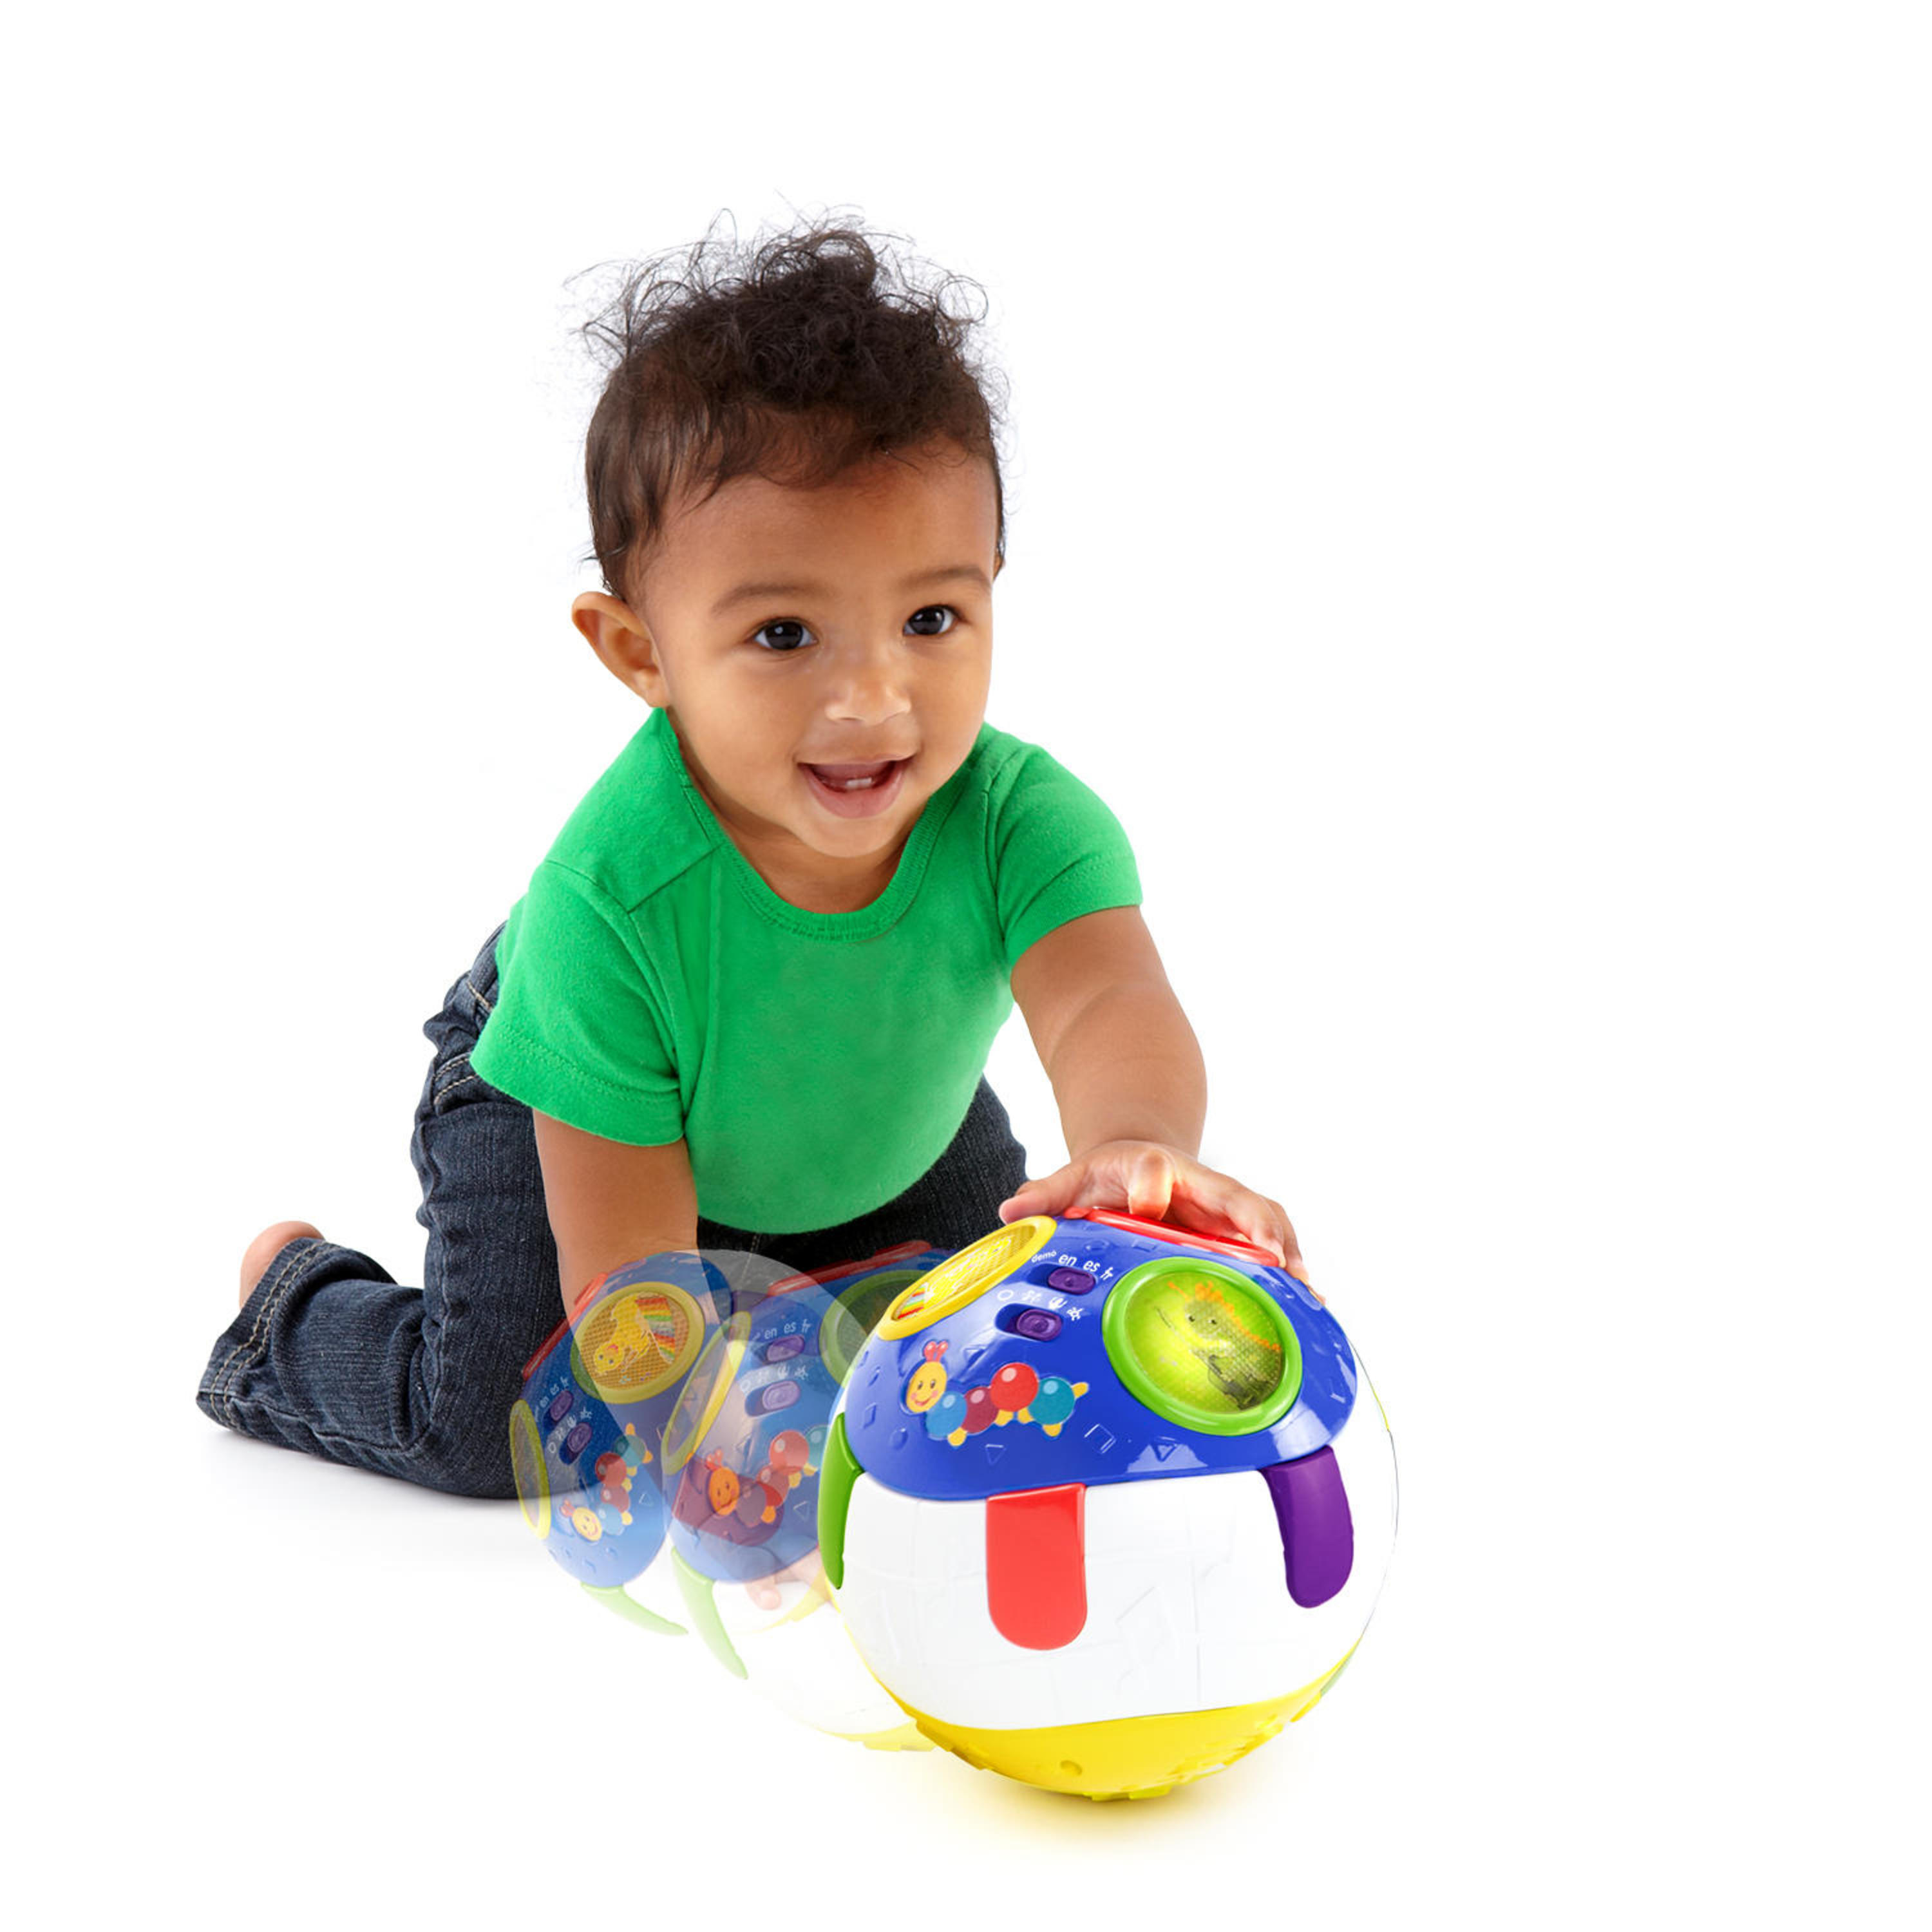 Baby Einstein Roll & Explore Symphony Ball Toy Walmart